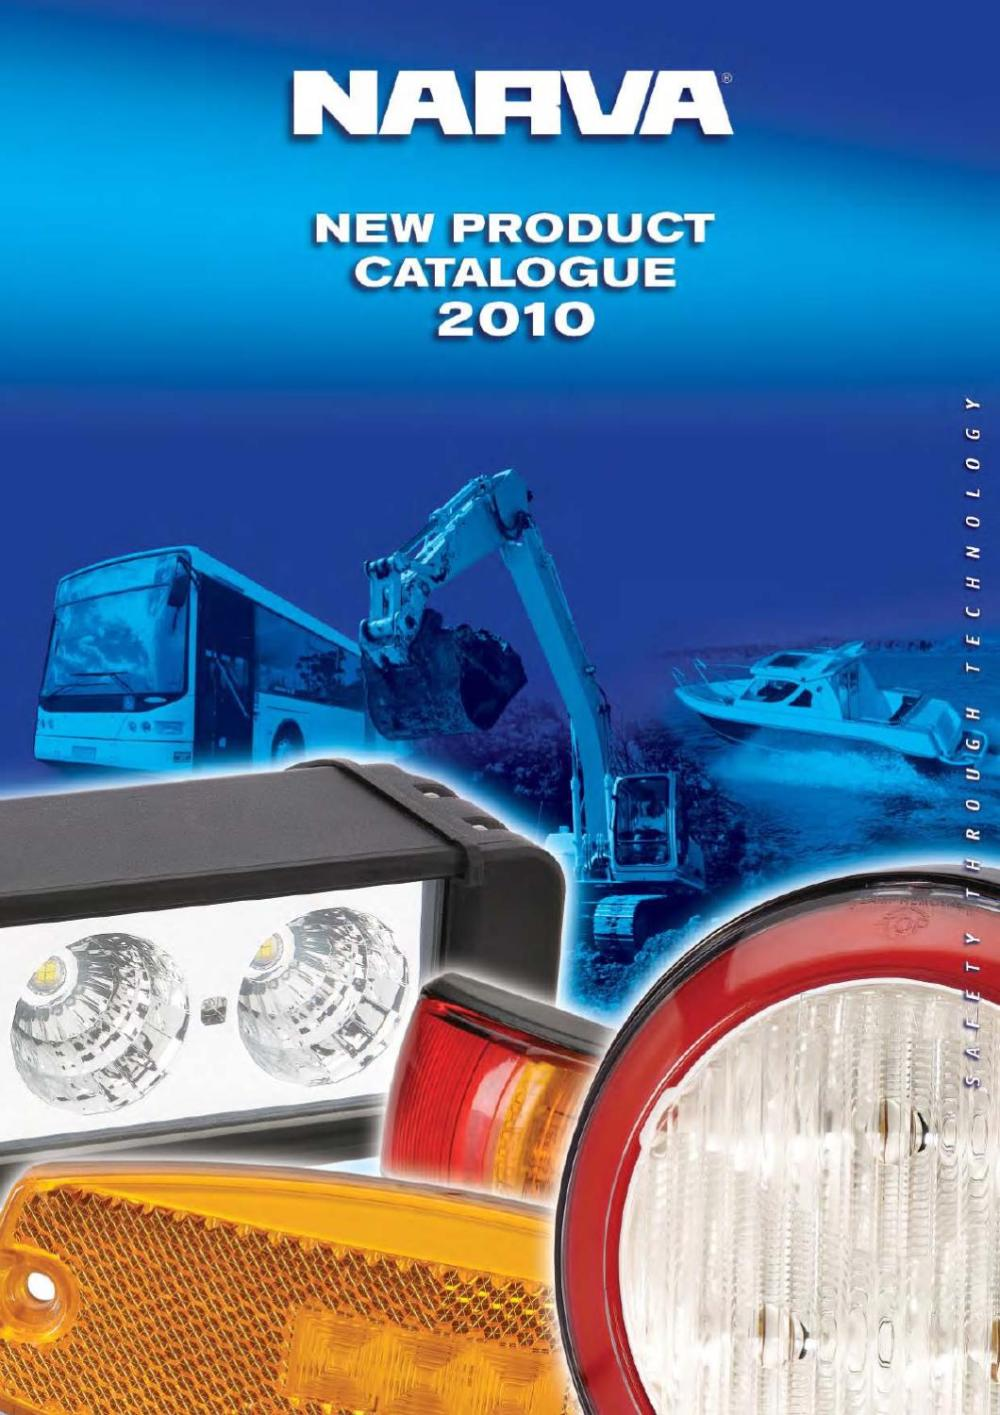 medium resolution of narva new product catalogue 2010 eng by autosvet com ua issuu